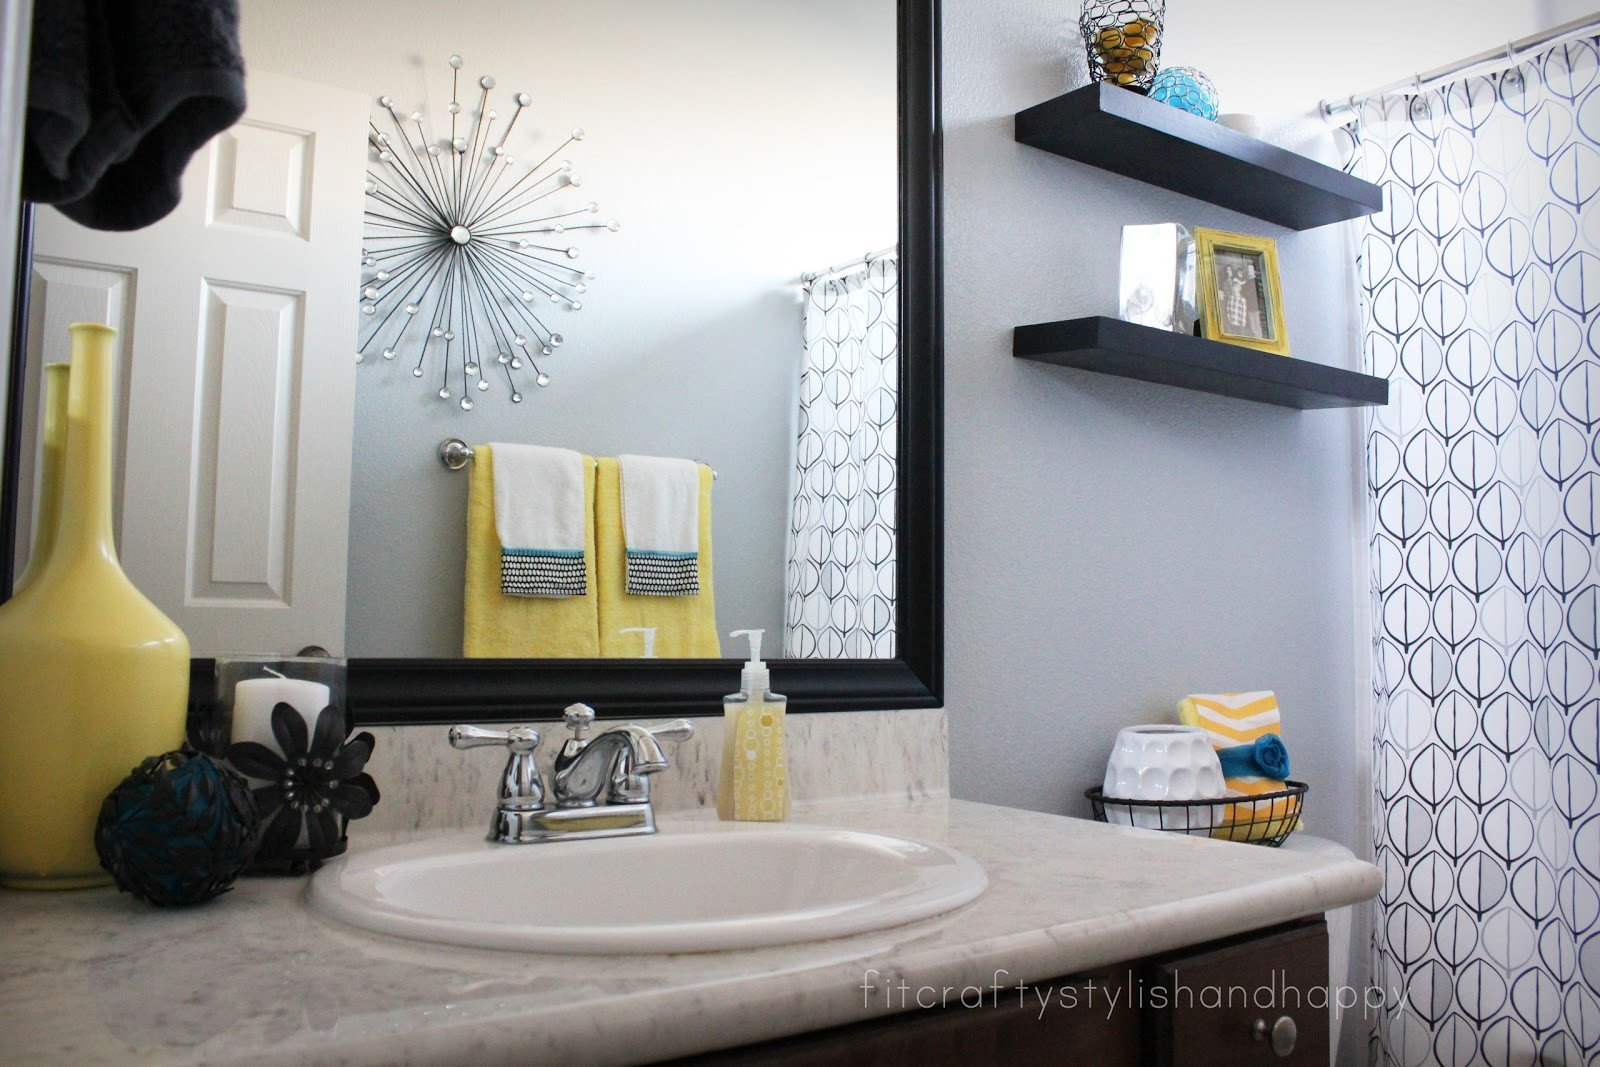 Black and Grey Bathroom Decor Awesome Fit Crafty Stylish and Happy Guest Bathroom Makeover